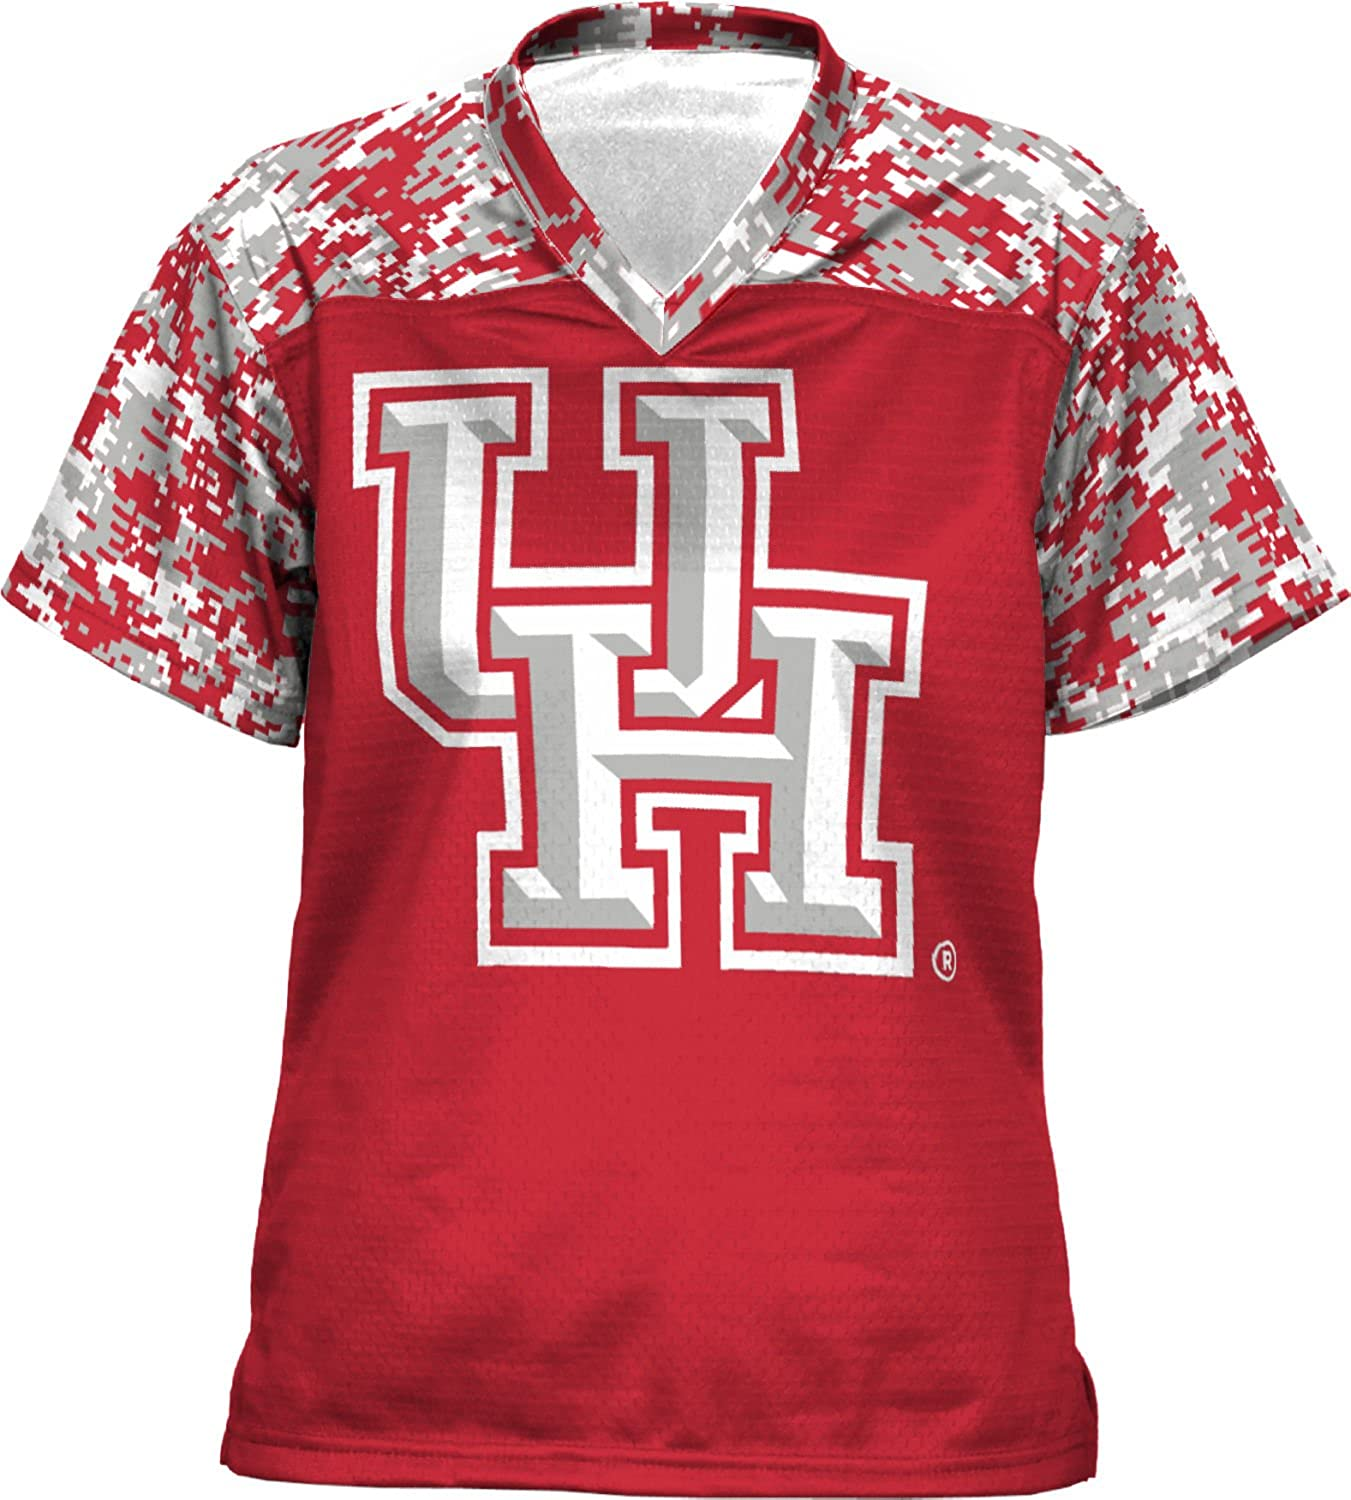 ProSphere University of Houston Girls' Football Jersey (Digital)